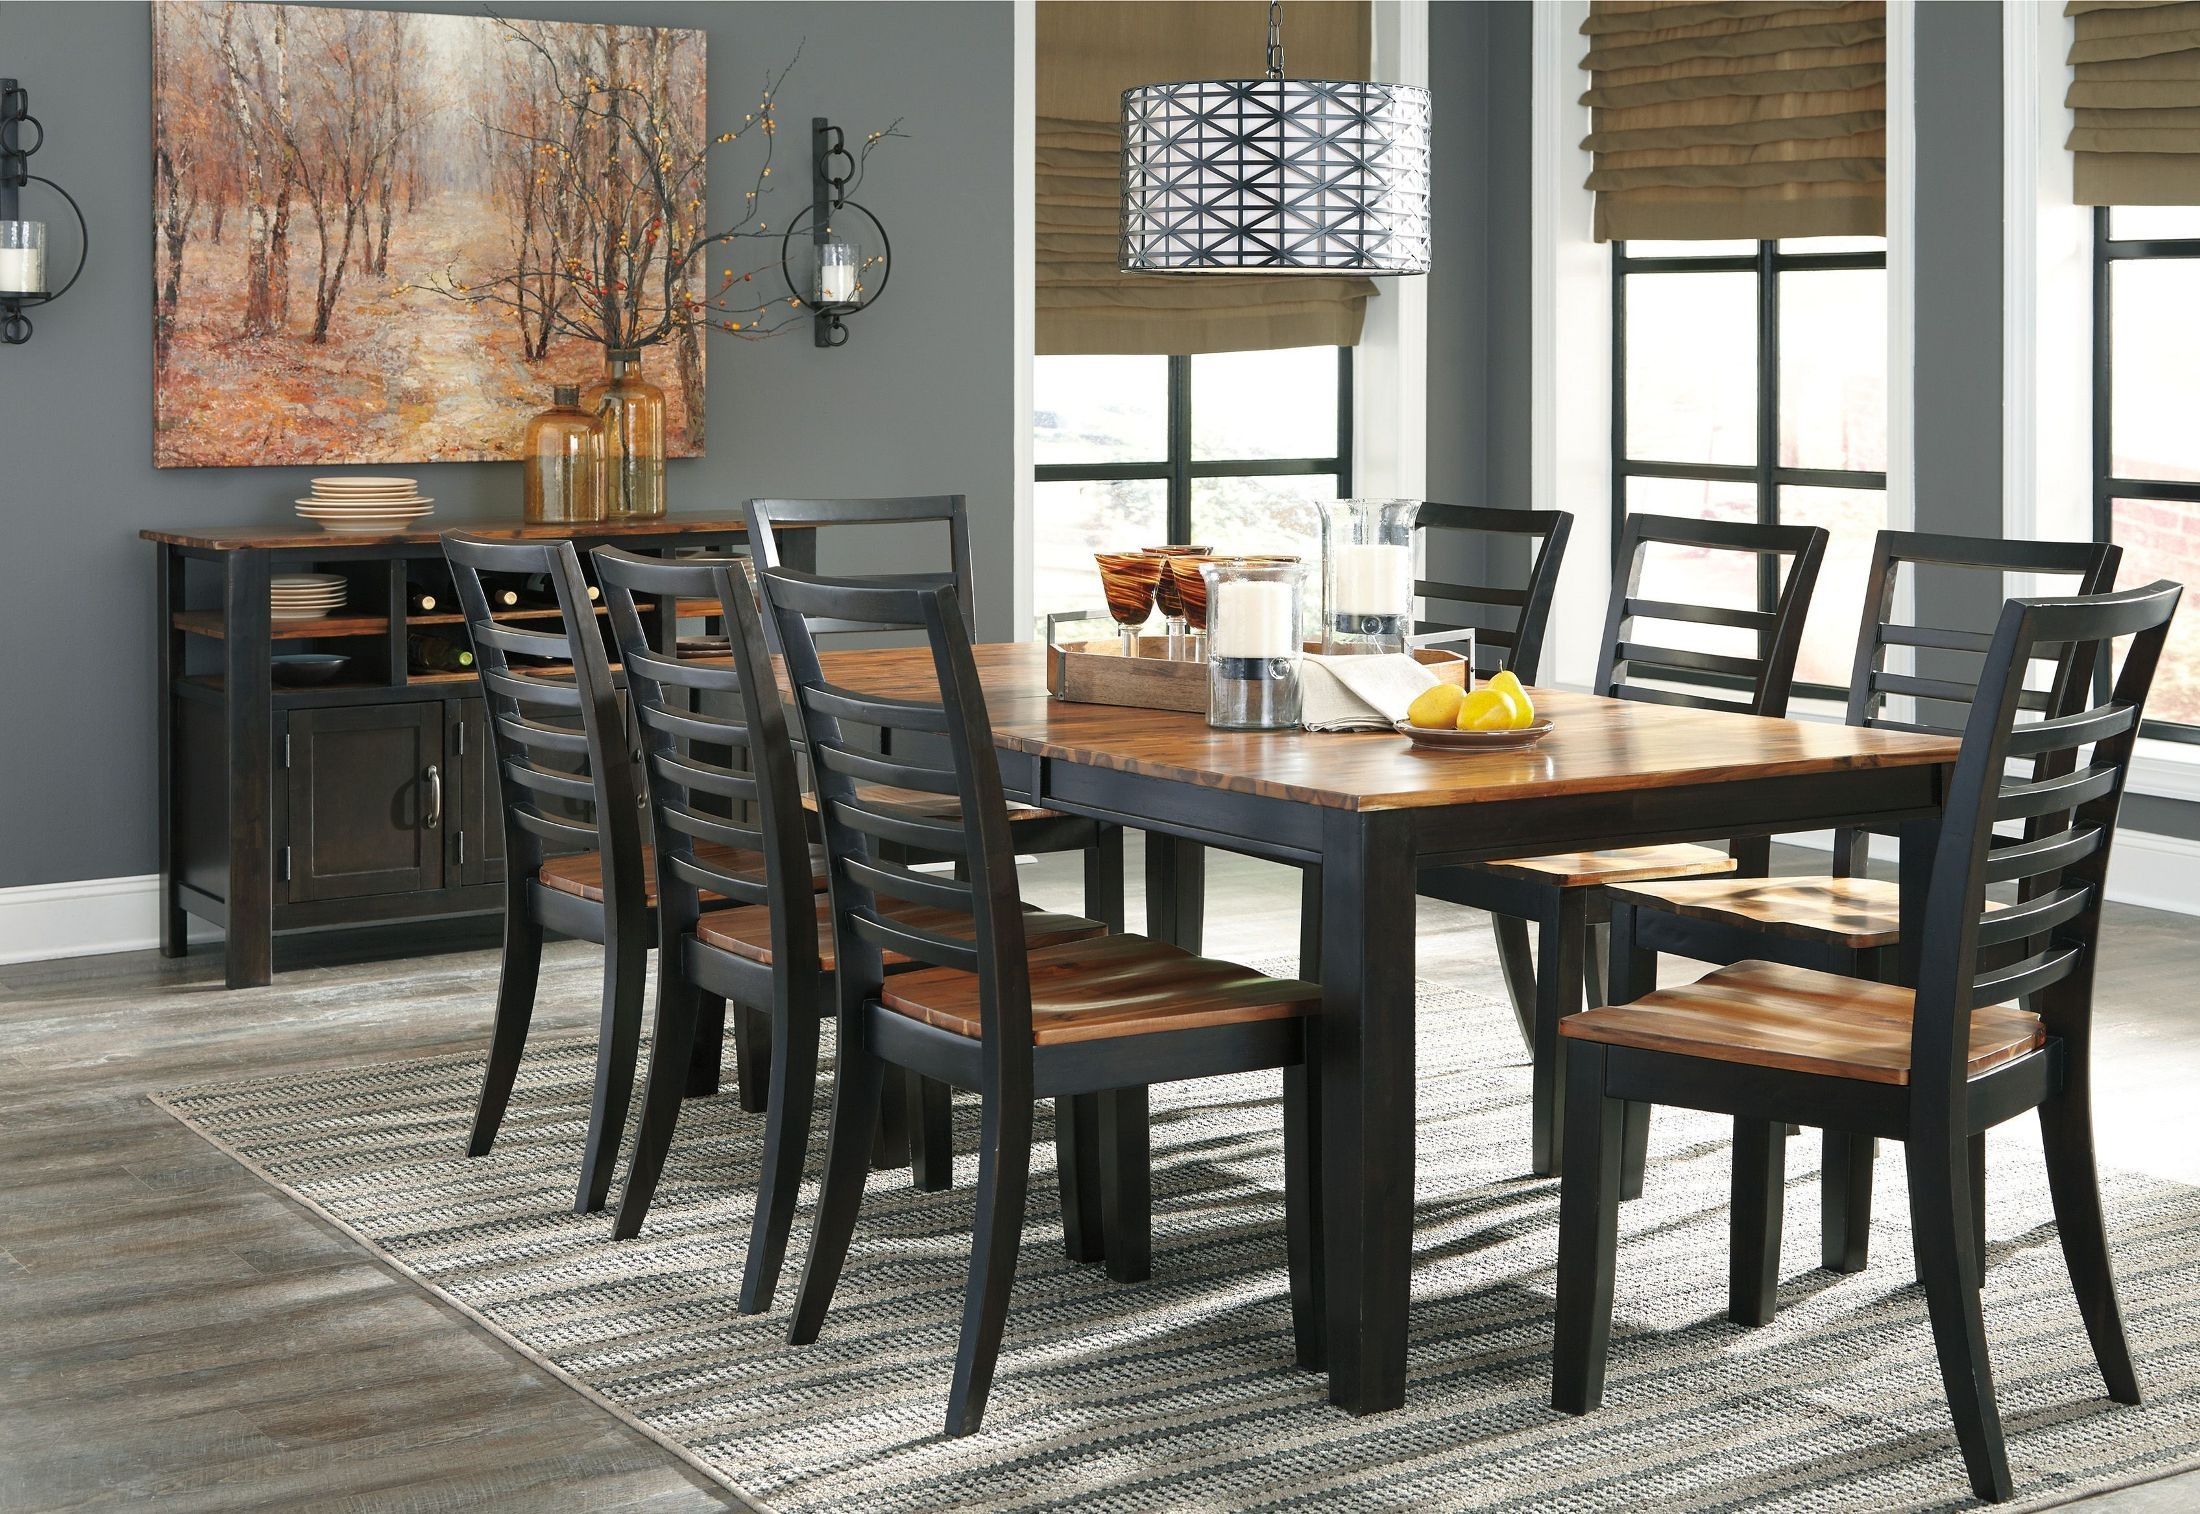 quinley two tone butterfly extendable rectangular dining room set d645 35 ashley. Black Bedroom Furniture Sets. Home Design Ideas